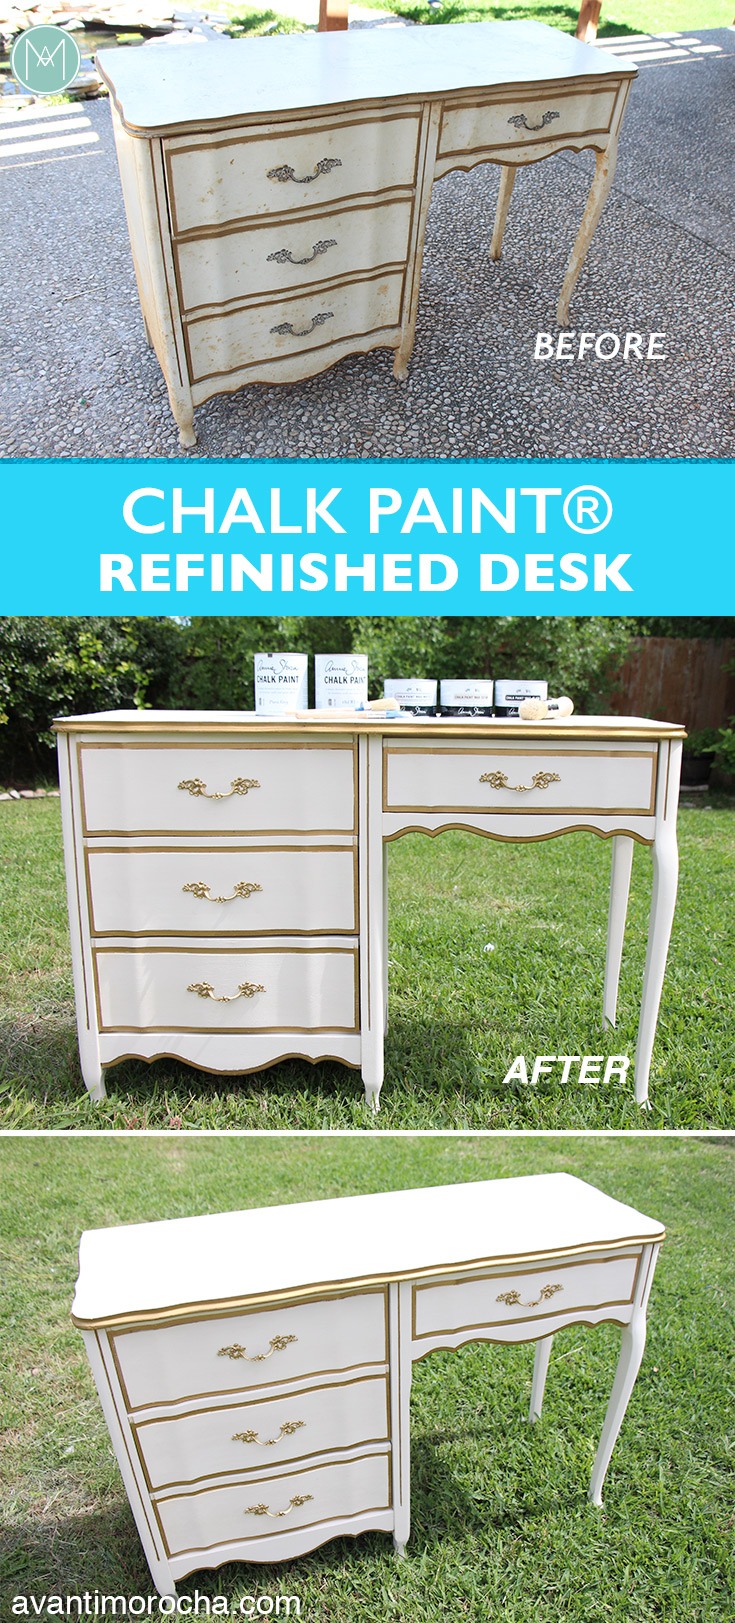 Chalk Paint® Refinished Desk